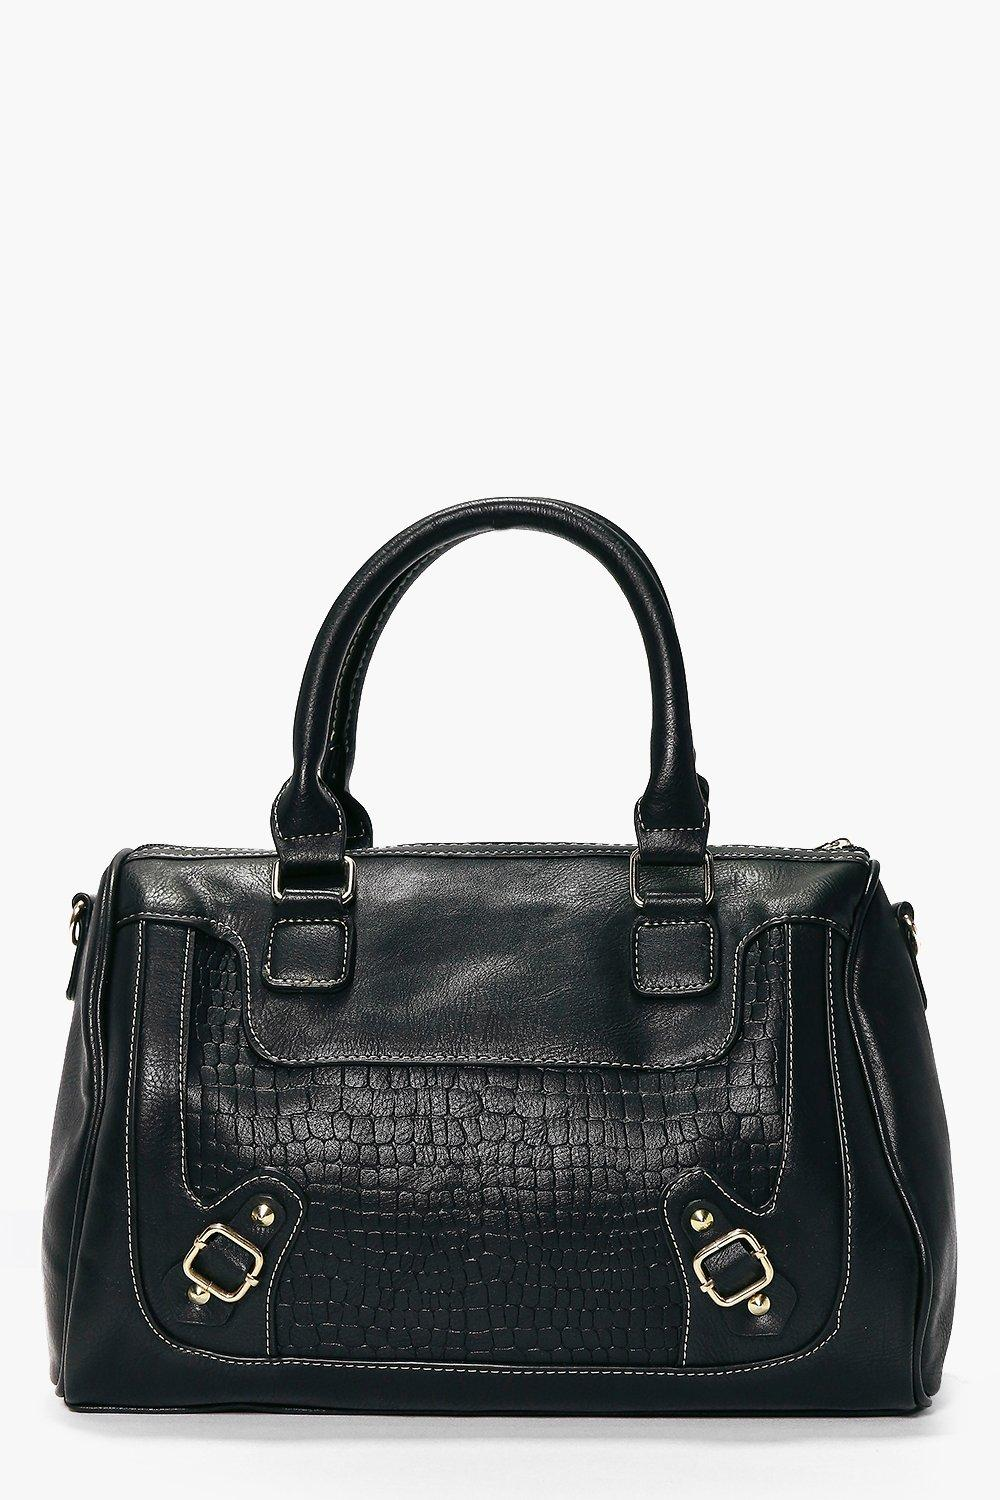 Structured Mock Croc Bowler Day Bag black